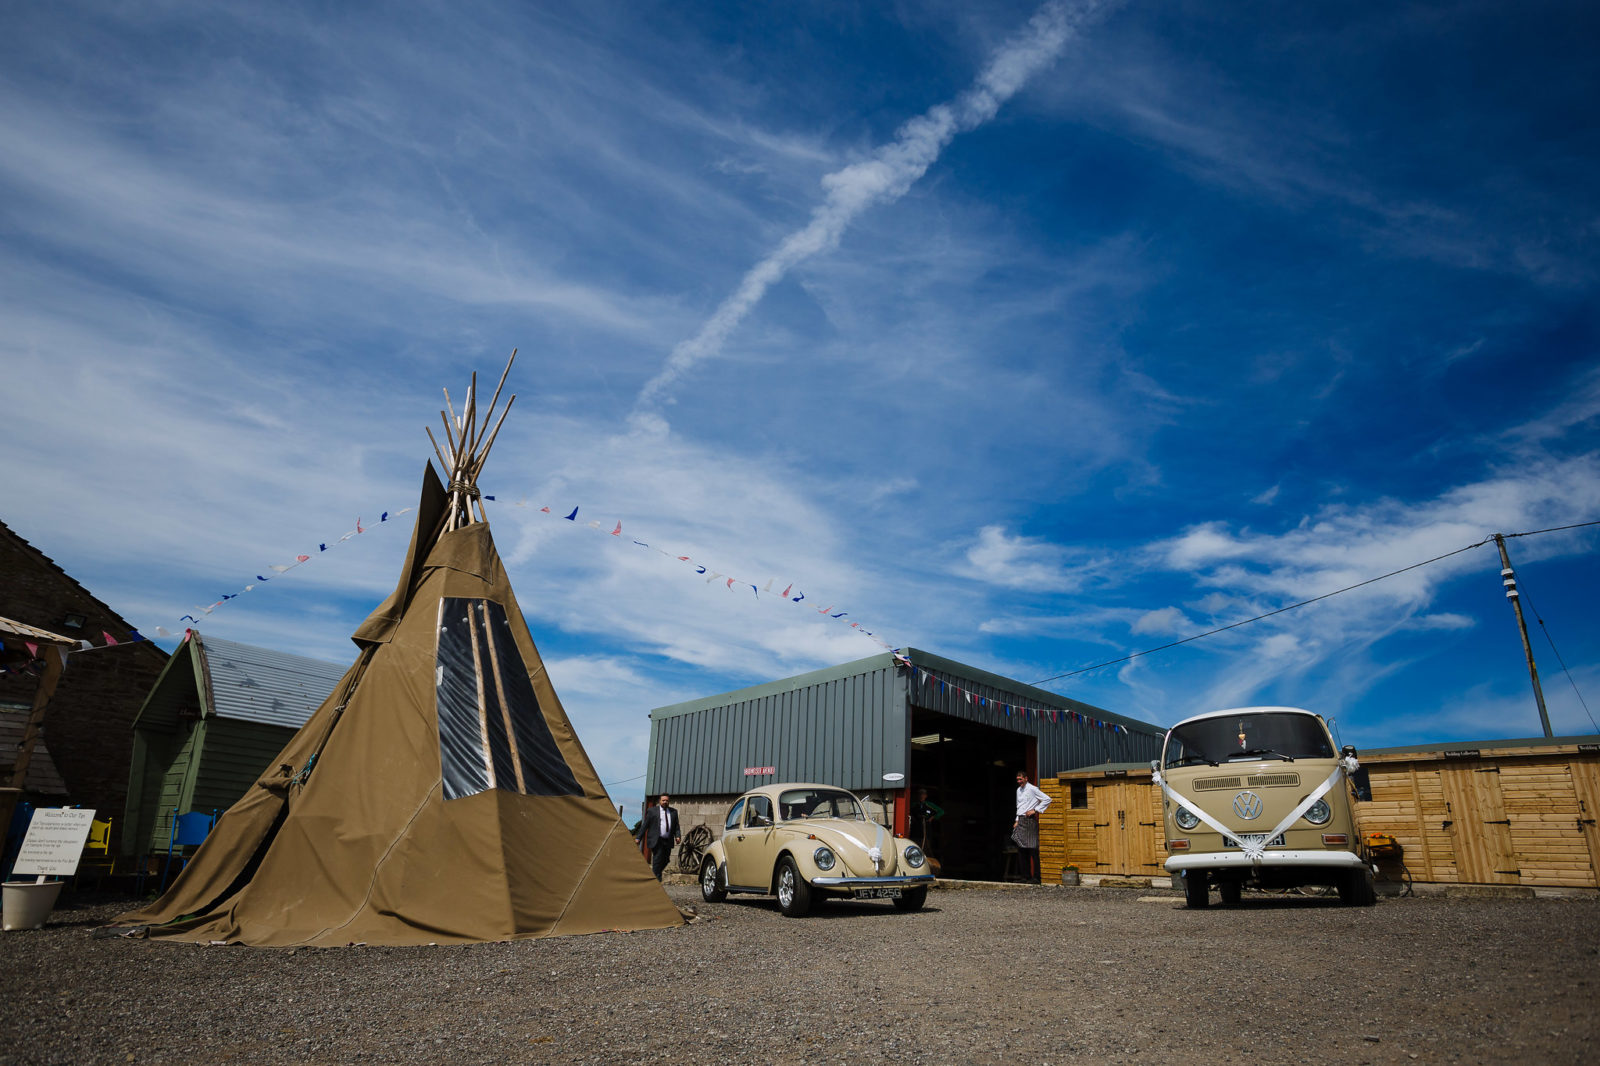 Tipi and beetle car and campervan at Wellbeing Farm